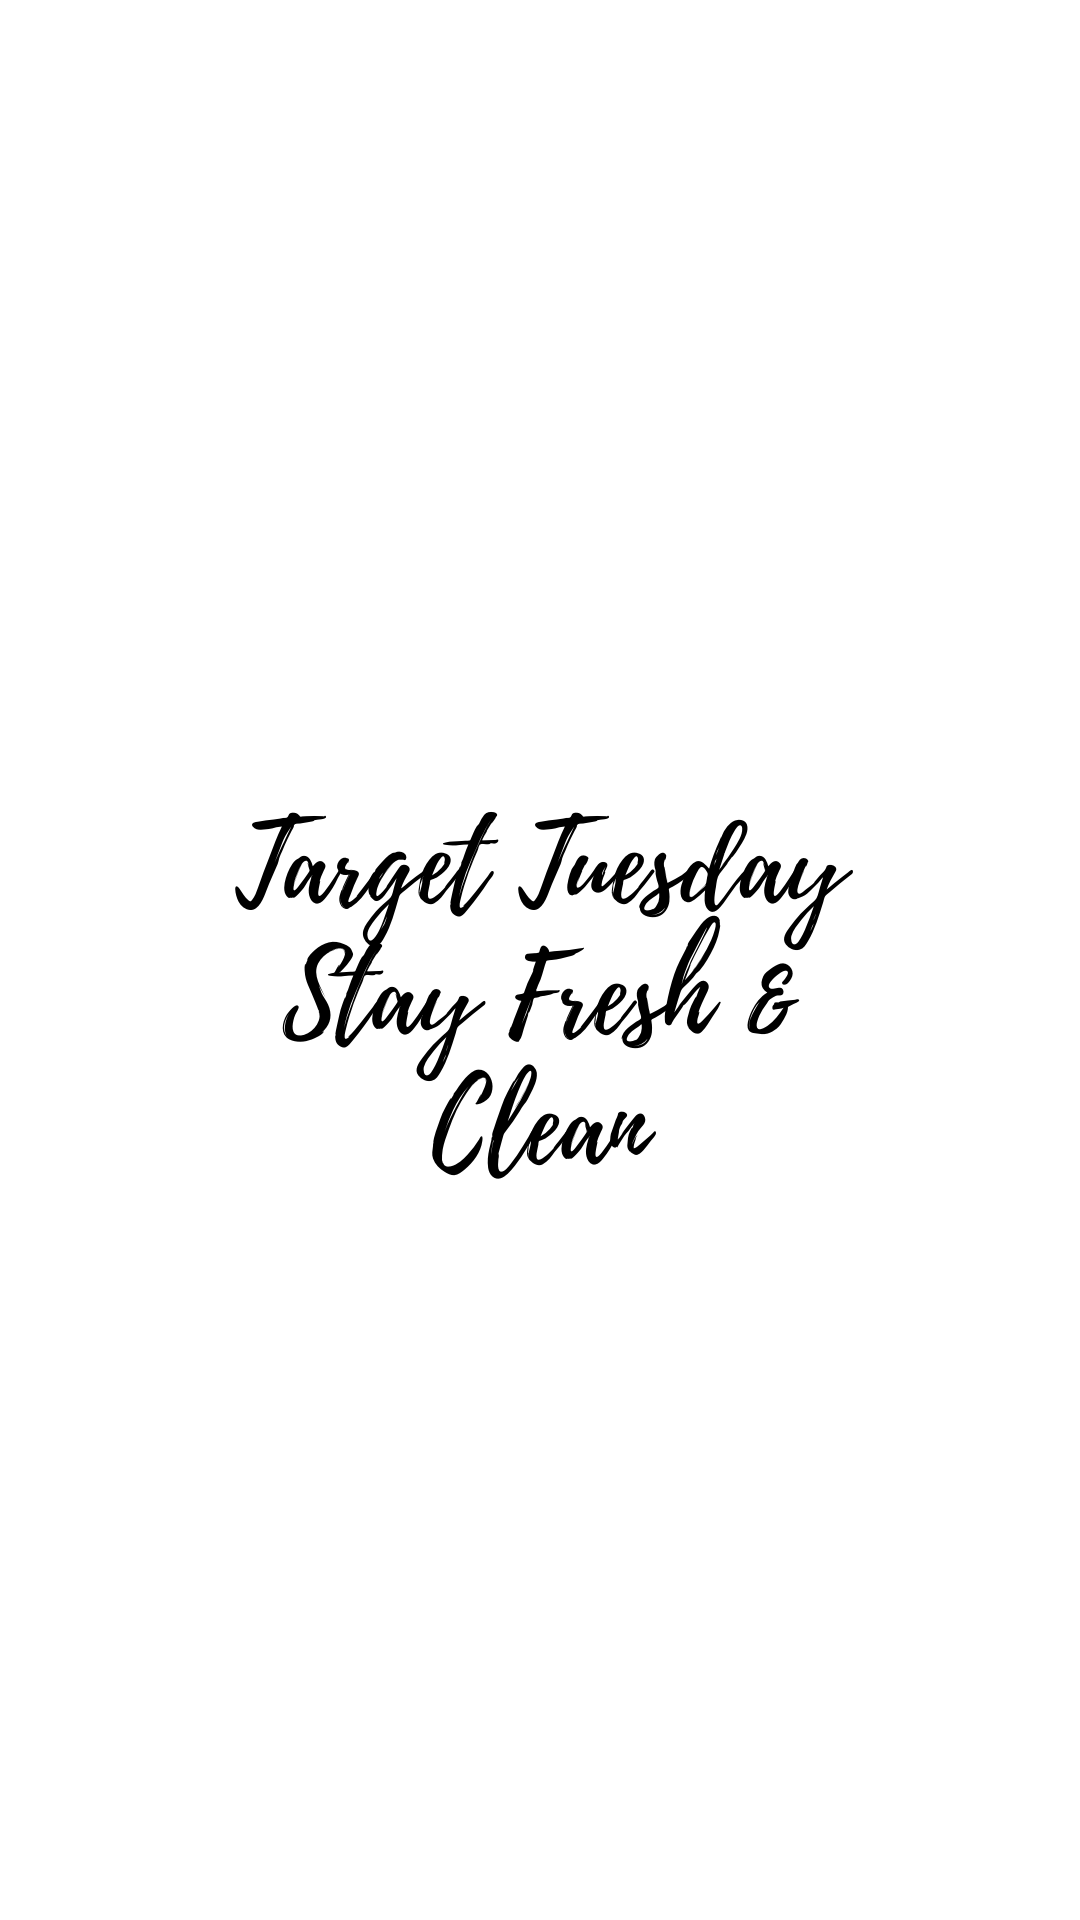 Target Tuesday-Stay fresh and clean!